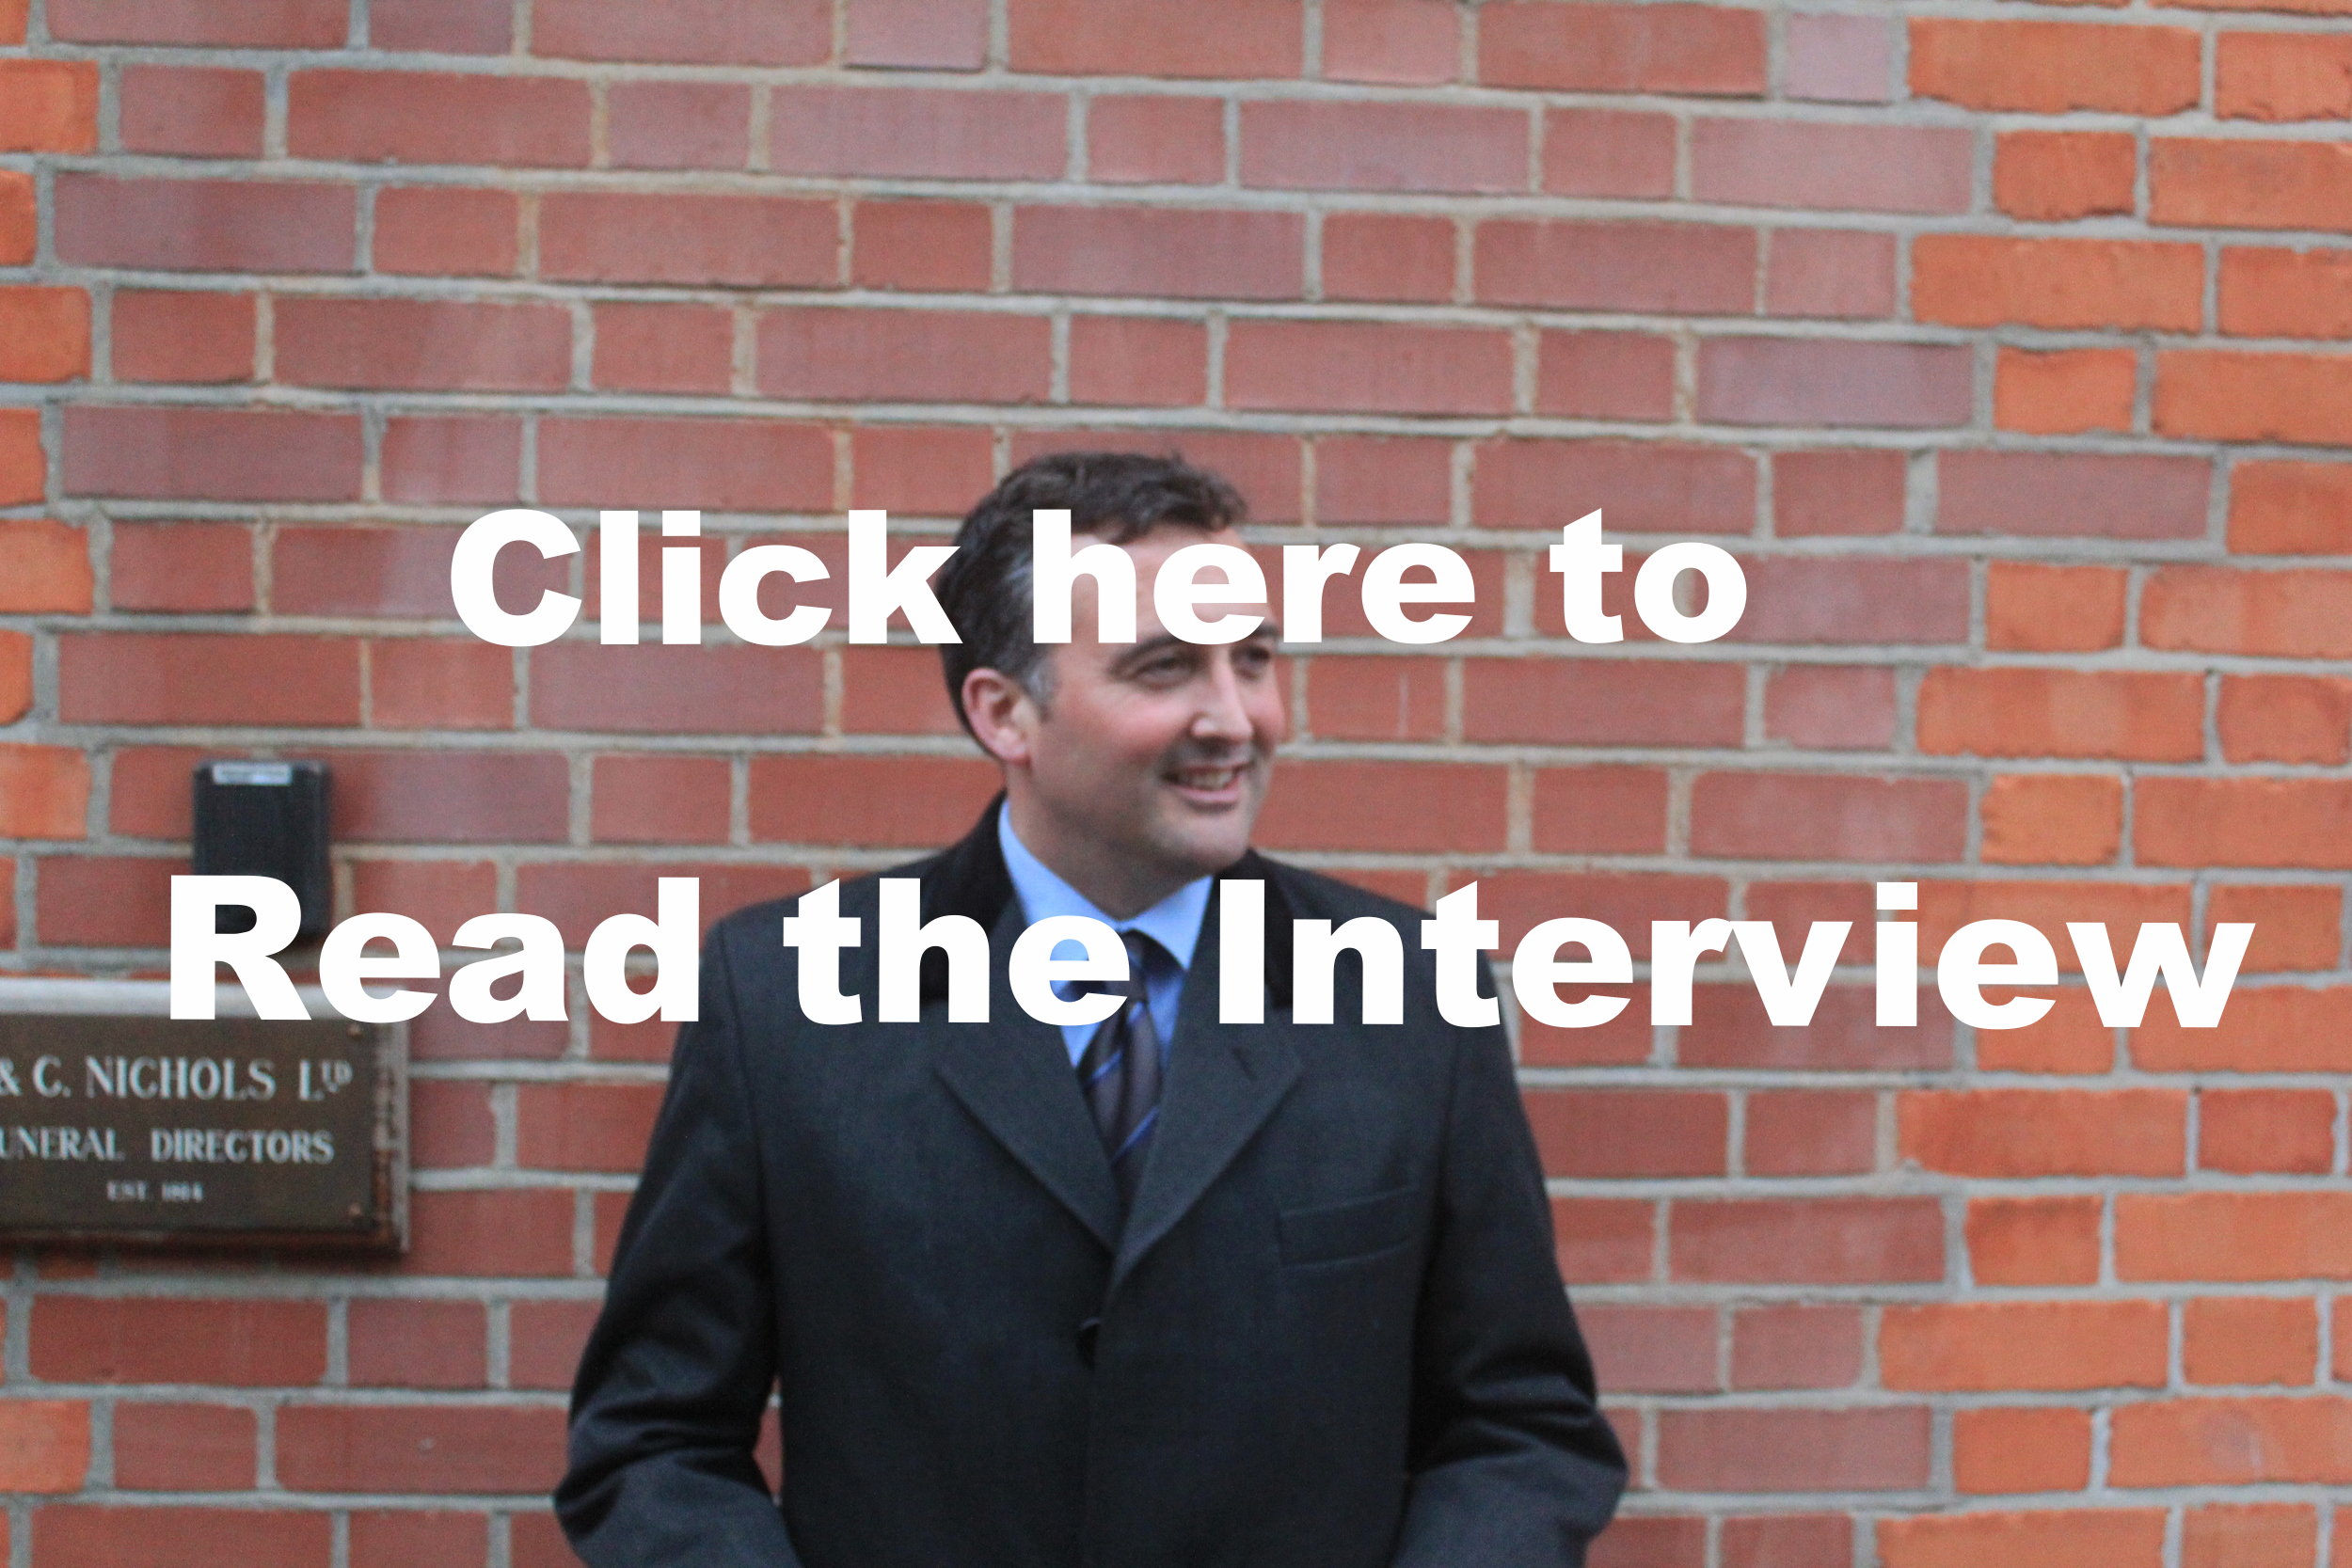 Click the Image to Read the Interview